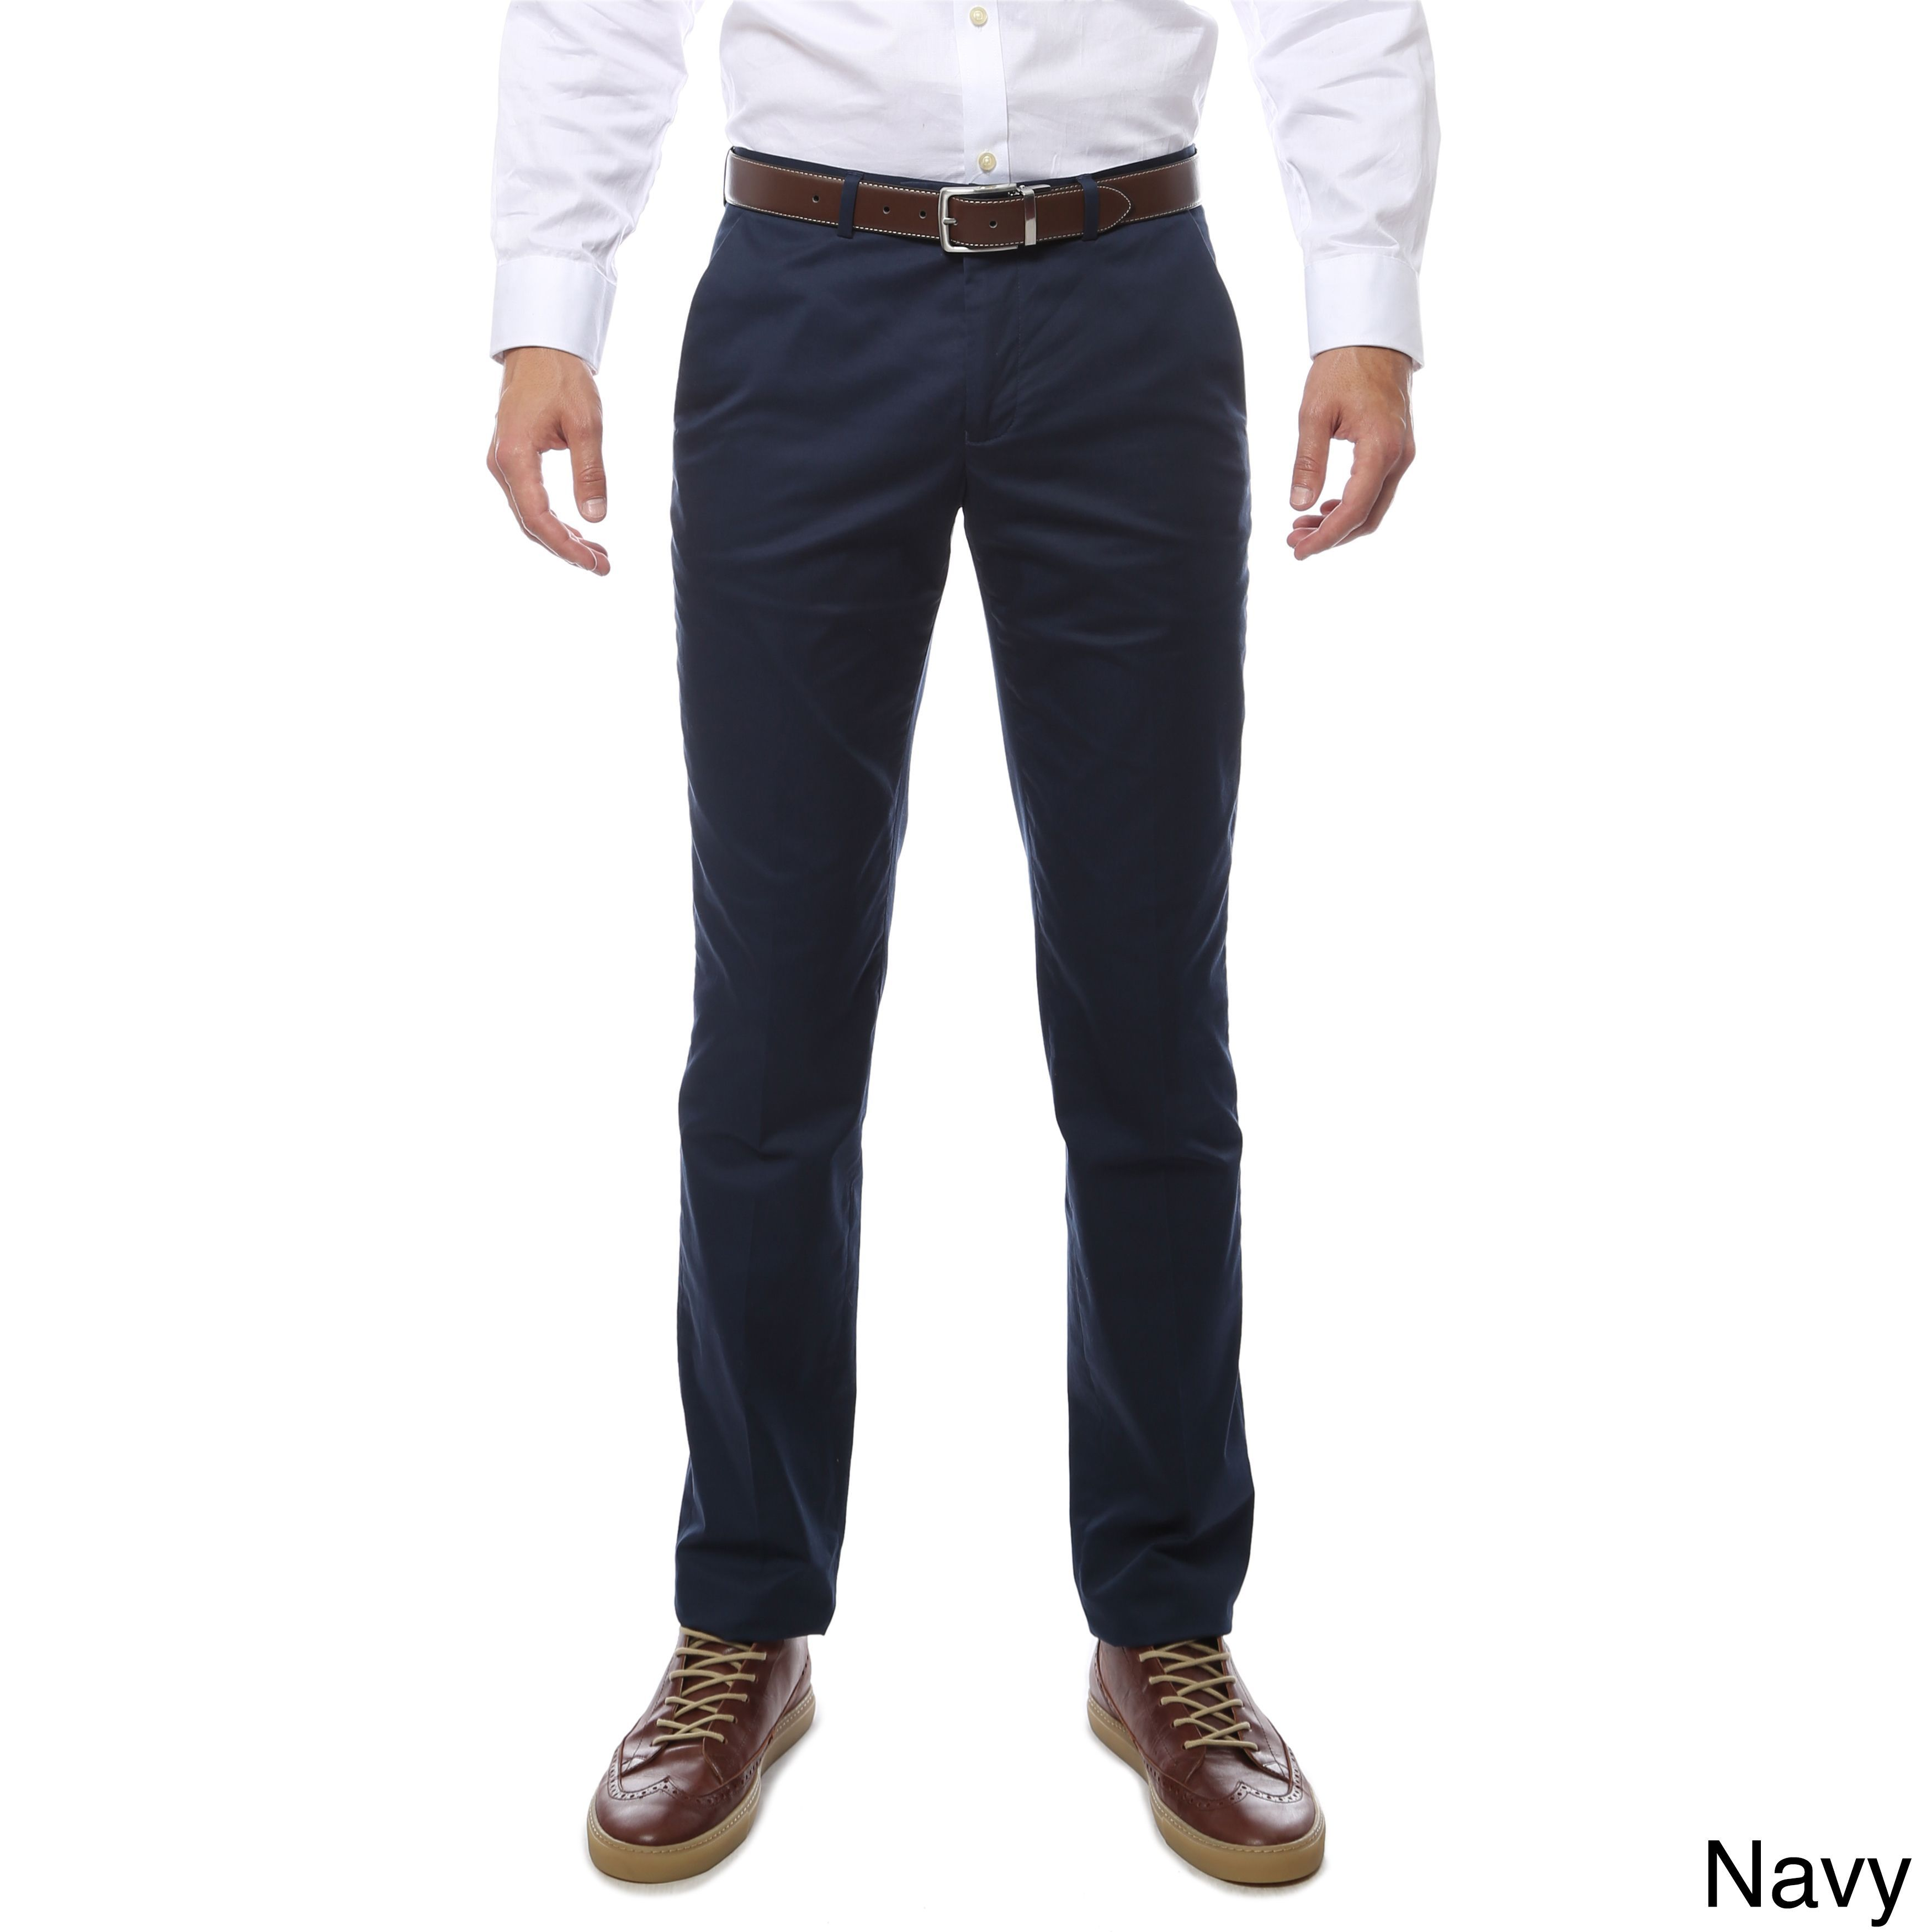 565259b6b2e Zonettie by Ferrecci Cotton Spandex Straight-leg Business-casual Chino Pants  (34 W 38 L - Navy - 34 Inch)